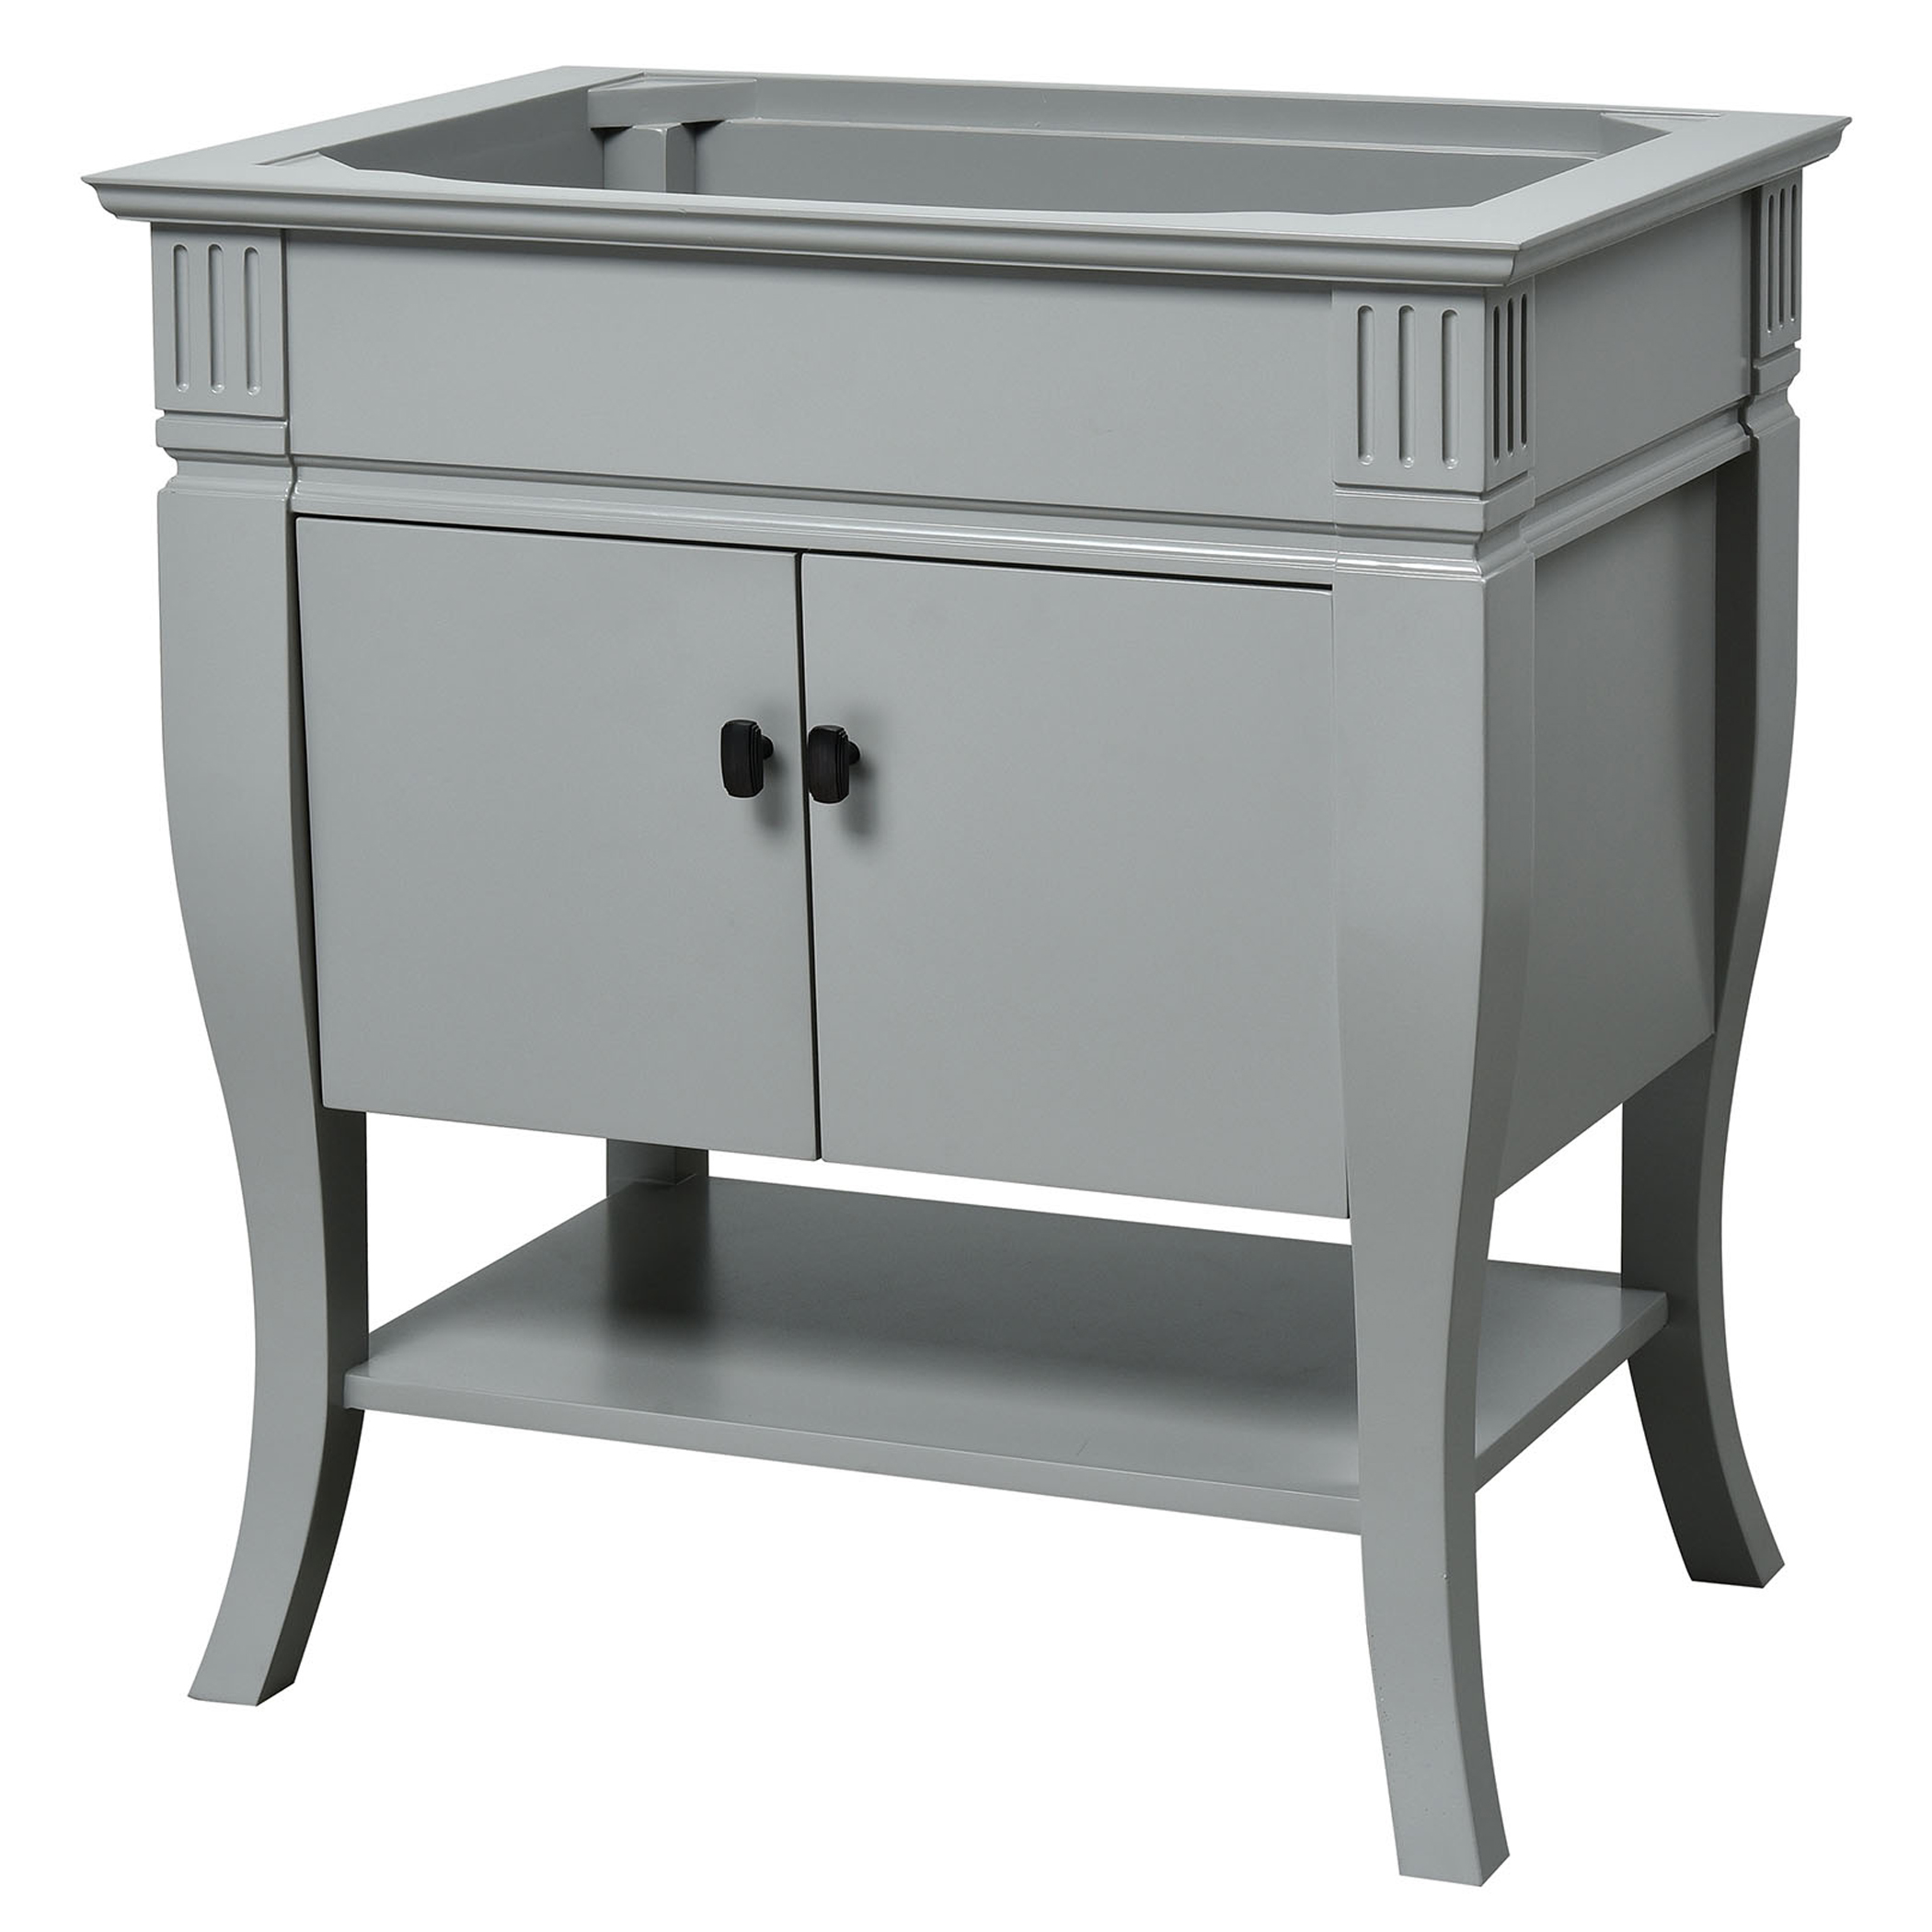 "30"" Transitional Bathroom Vanity - Grey Finish with Top and Mirror Options"